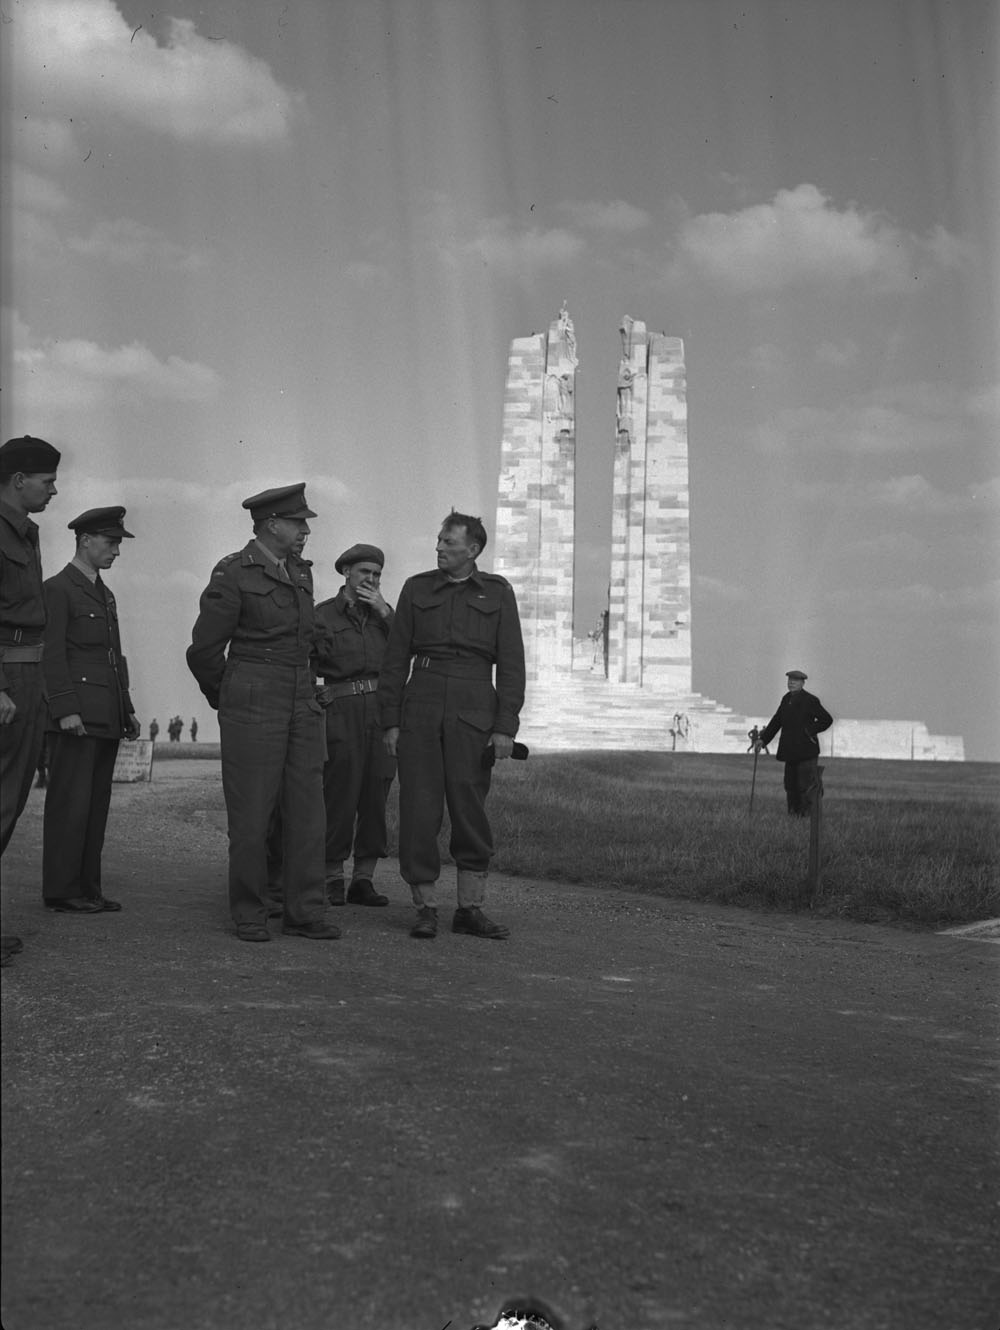 A group of men in military uniforms talking, watched from a distance by a man in civilian clothes. A stone war memorial featuring two tall vertical columns can be seen in the background.